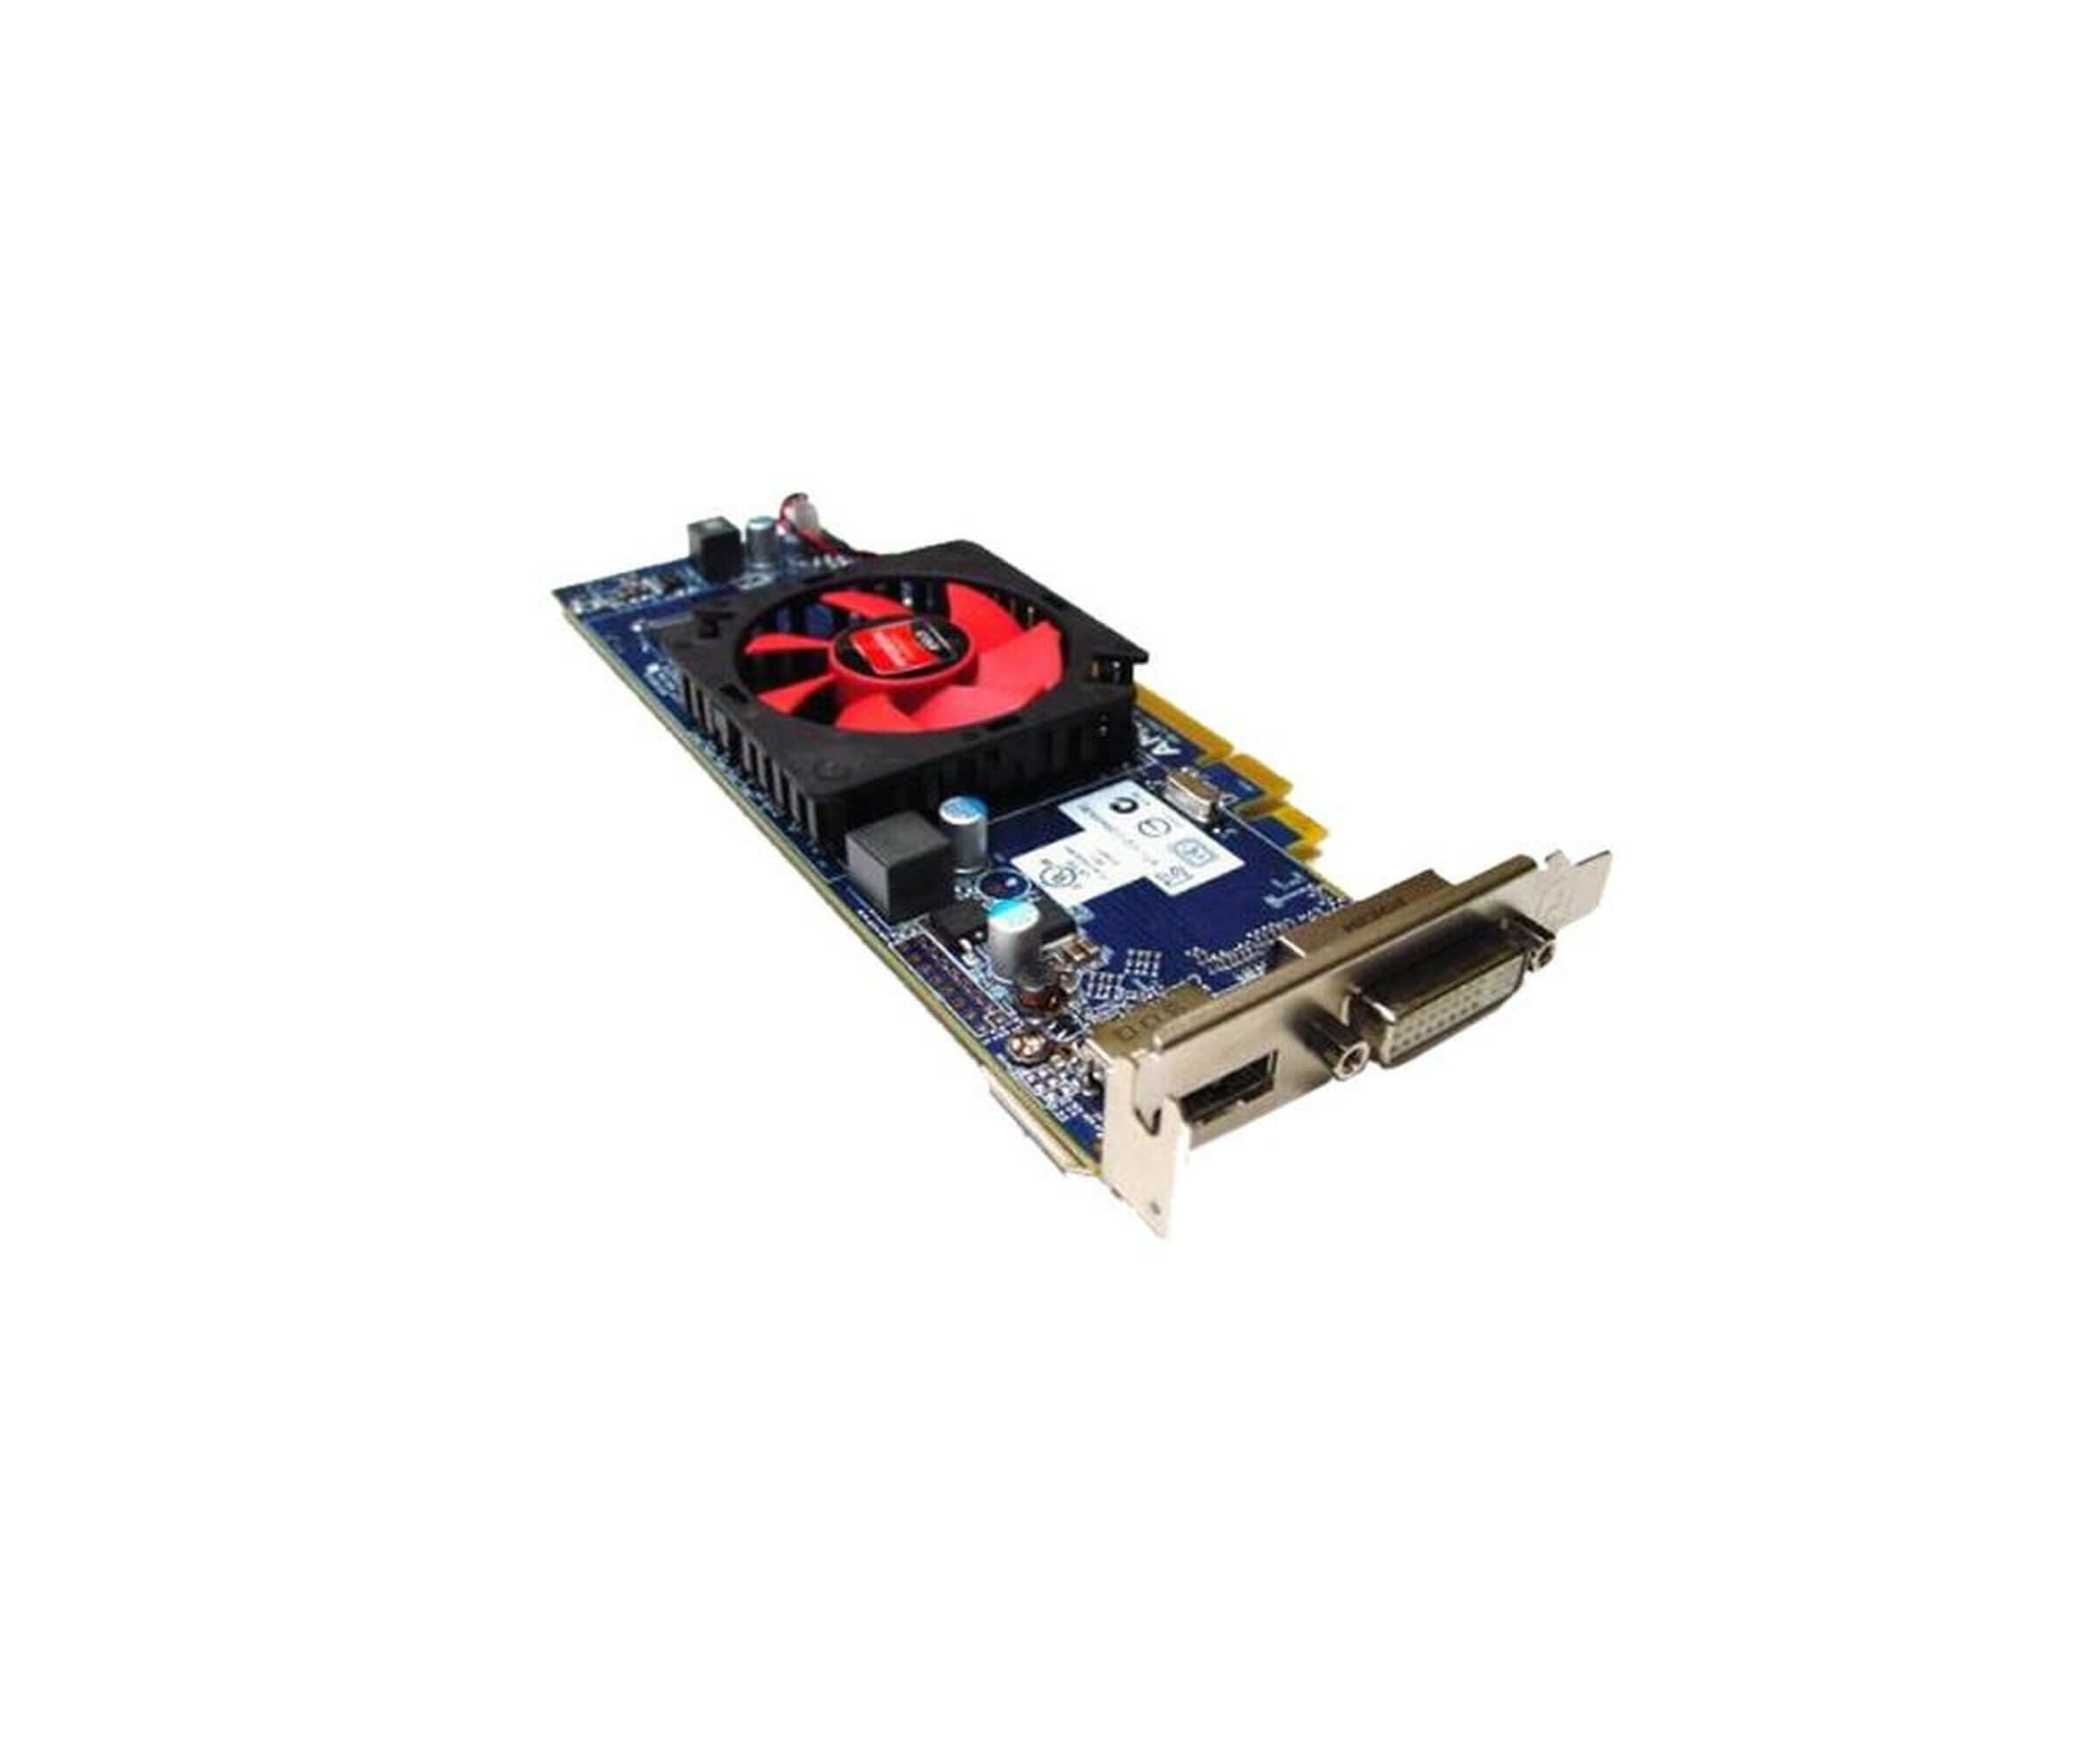 AMD Radeon HD 6450 - Grafikadapter - Radeon HD 6450 - PCI Express 2.1 x16 - Low profile - 1 GB DDR3 - M0KV6